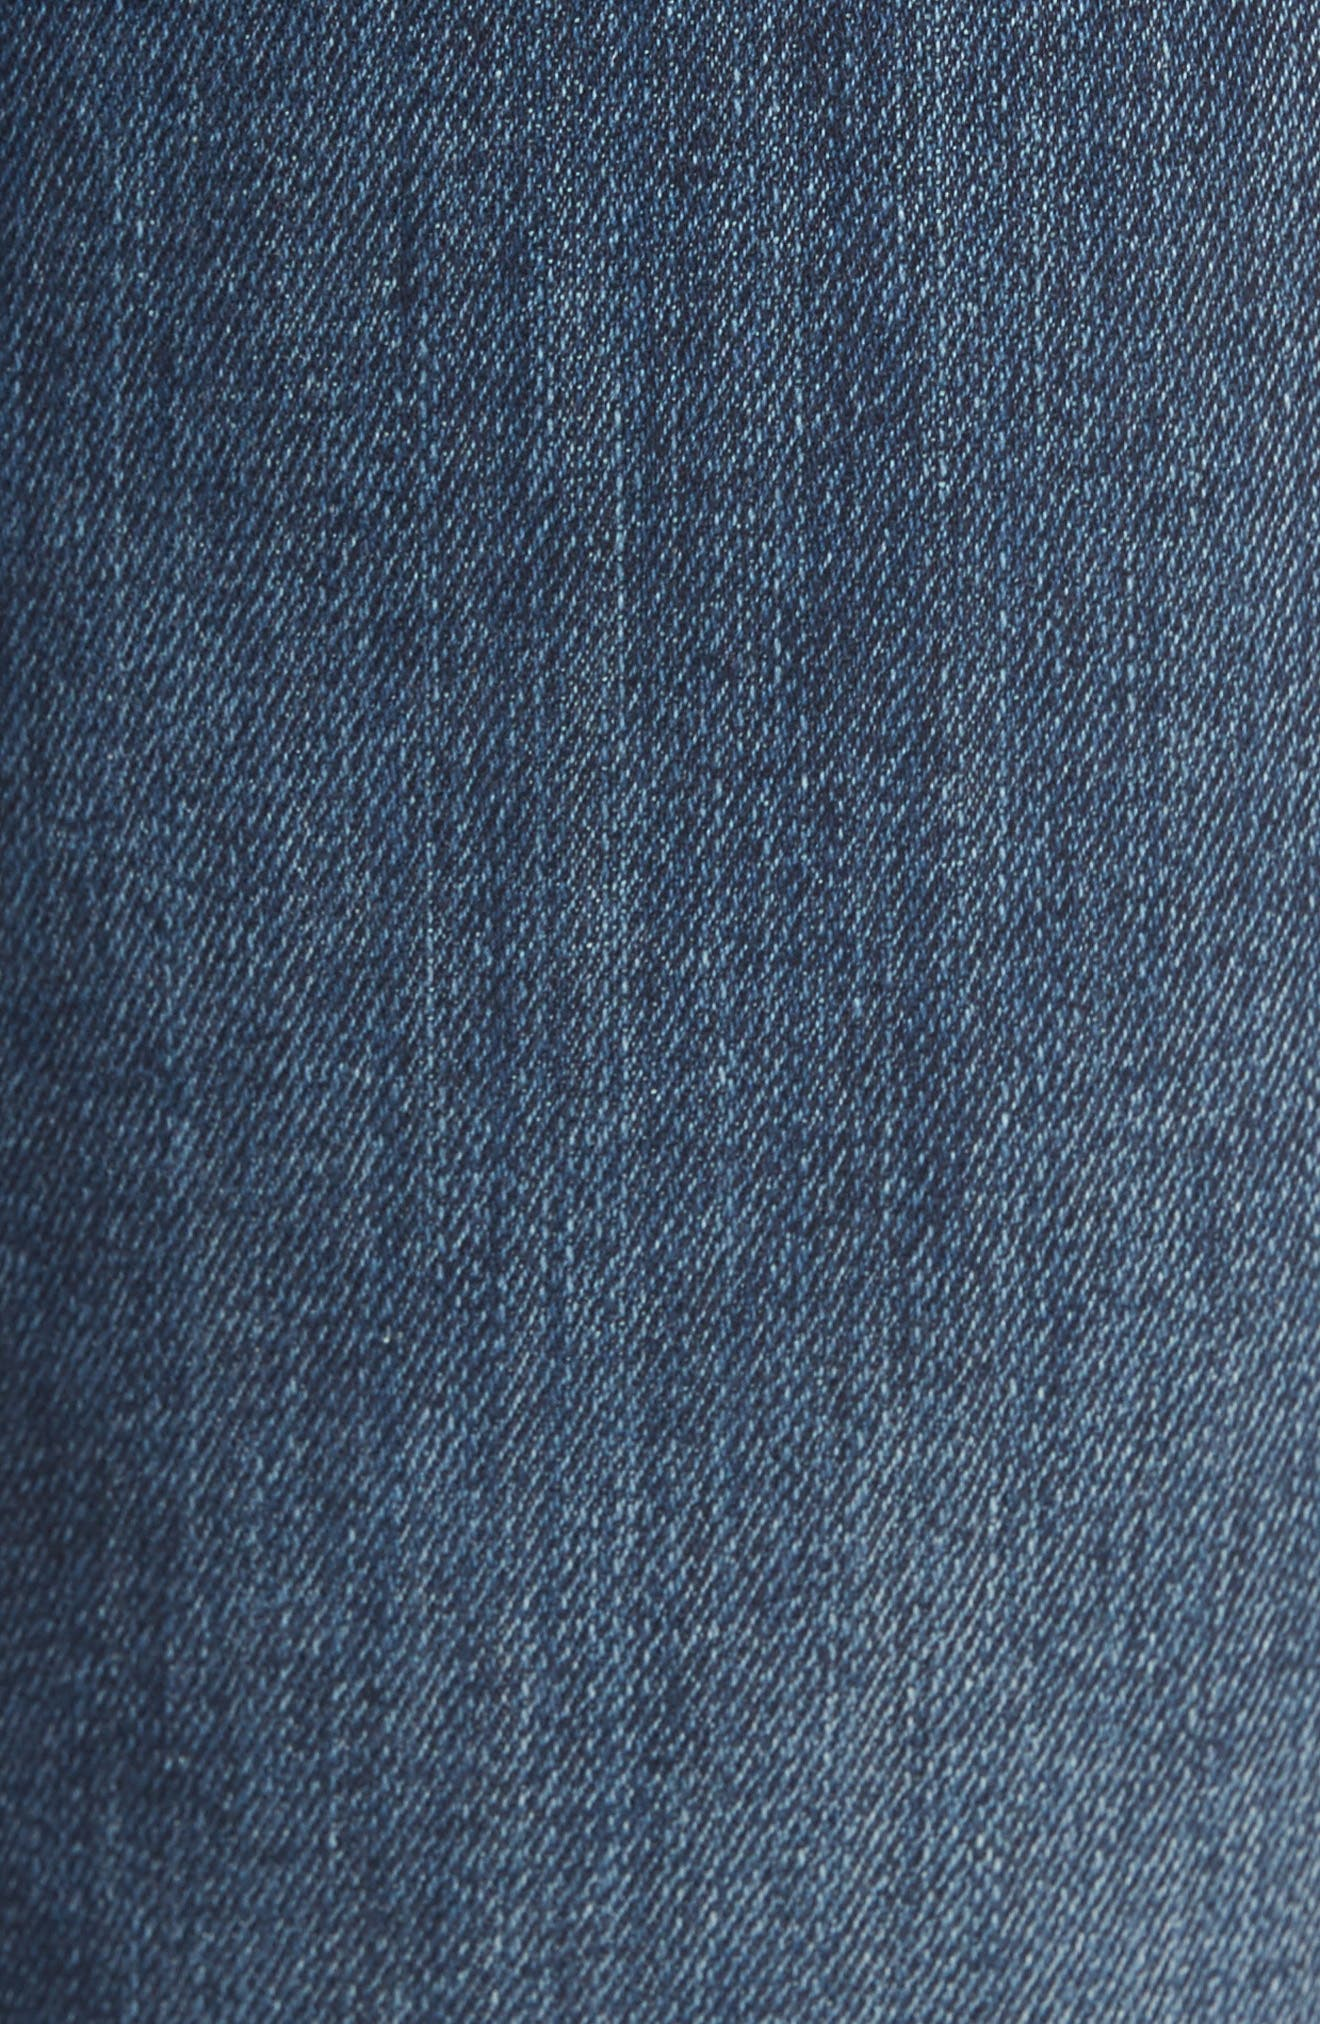 Abbey Bootcut Jeans,                             Alternate thumbnail 5, color,                             420